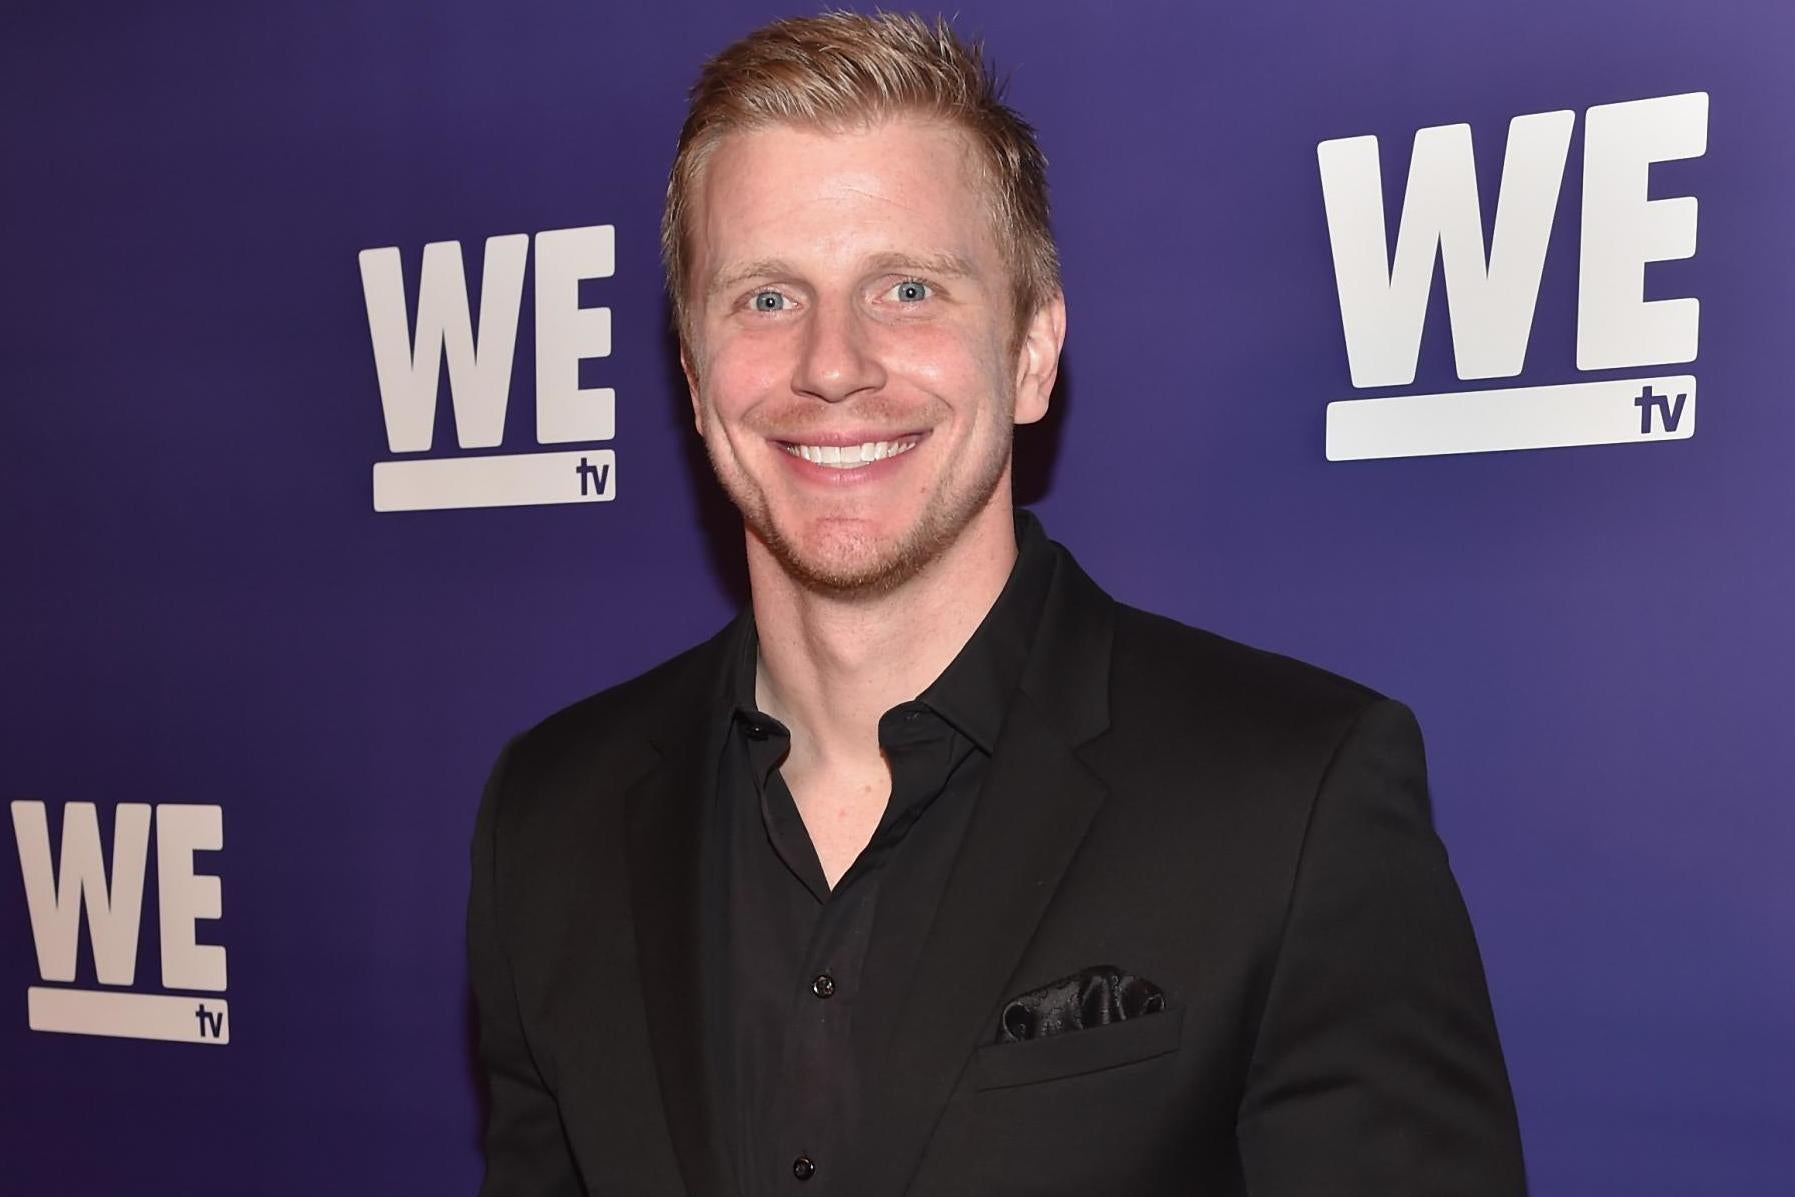 Former Bachelor Sean Lowe criticised for implying he is poor